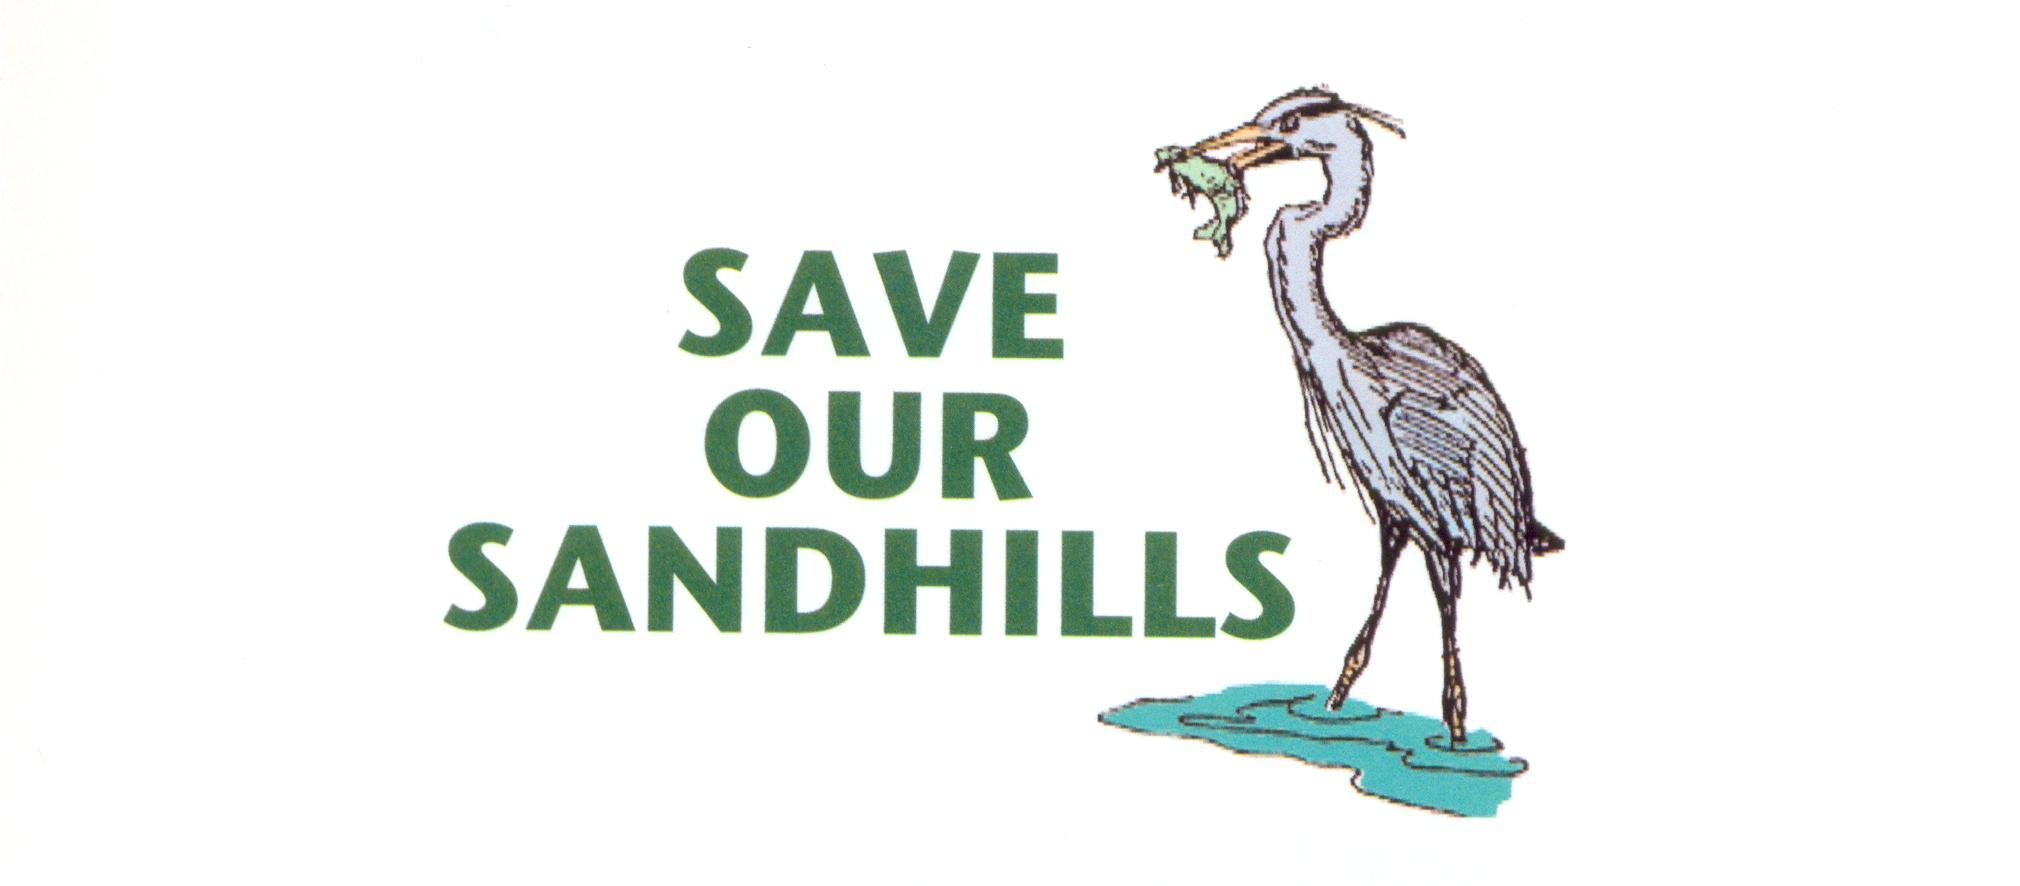 Save Our Sandhills-Longleaf Ecosystem Preservation